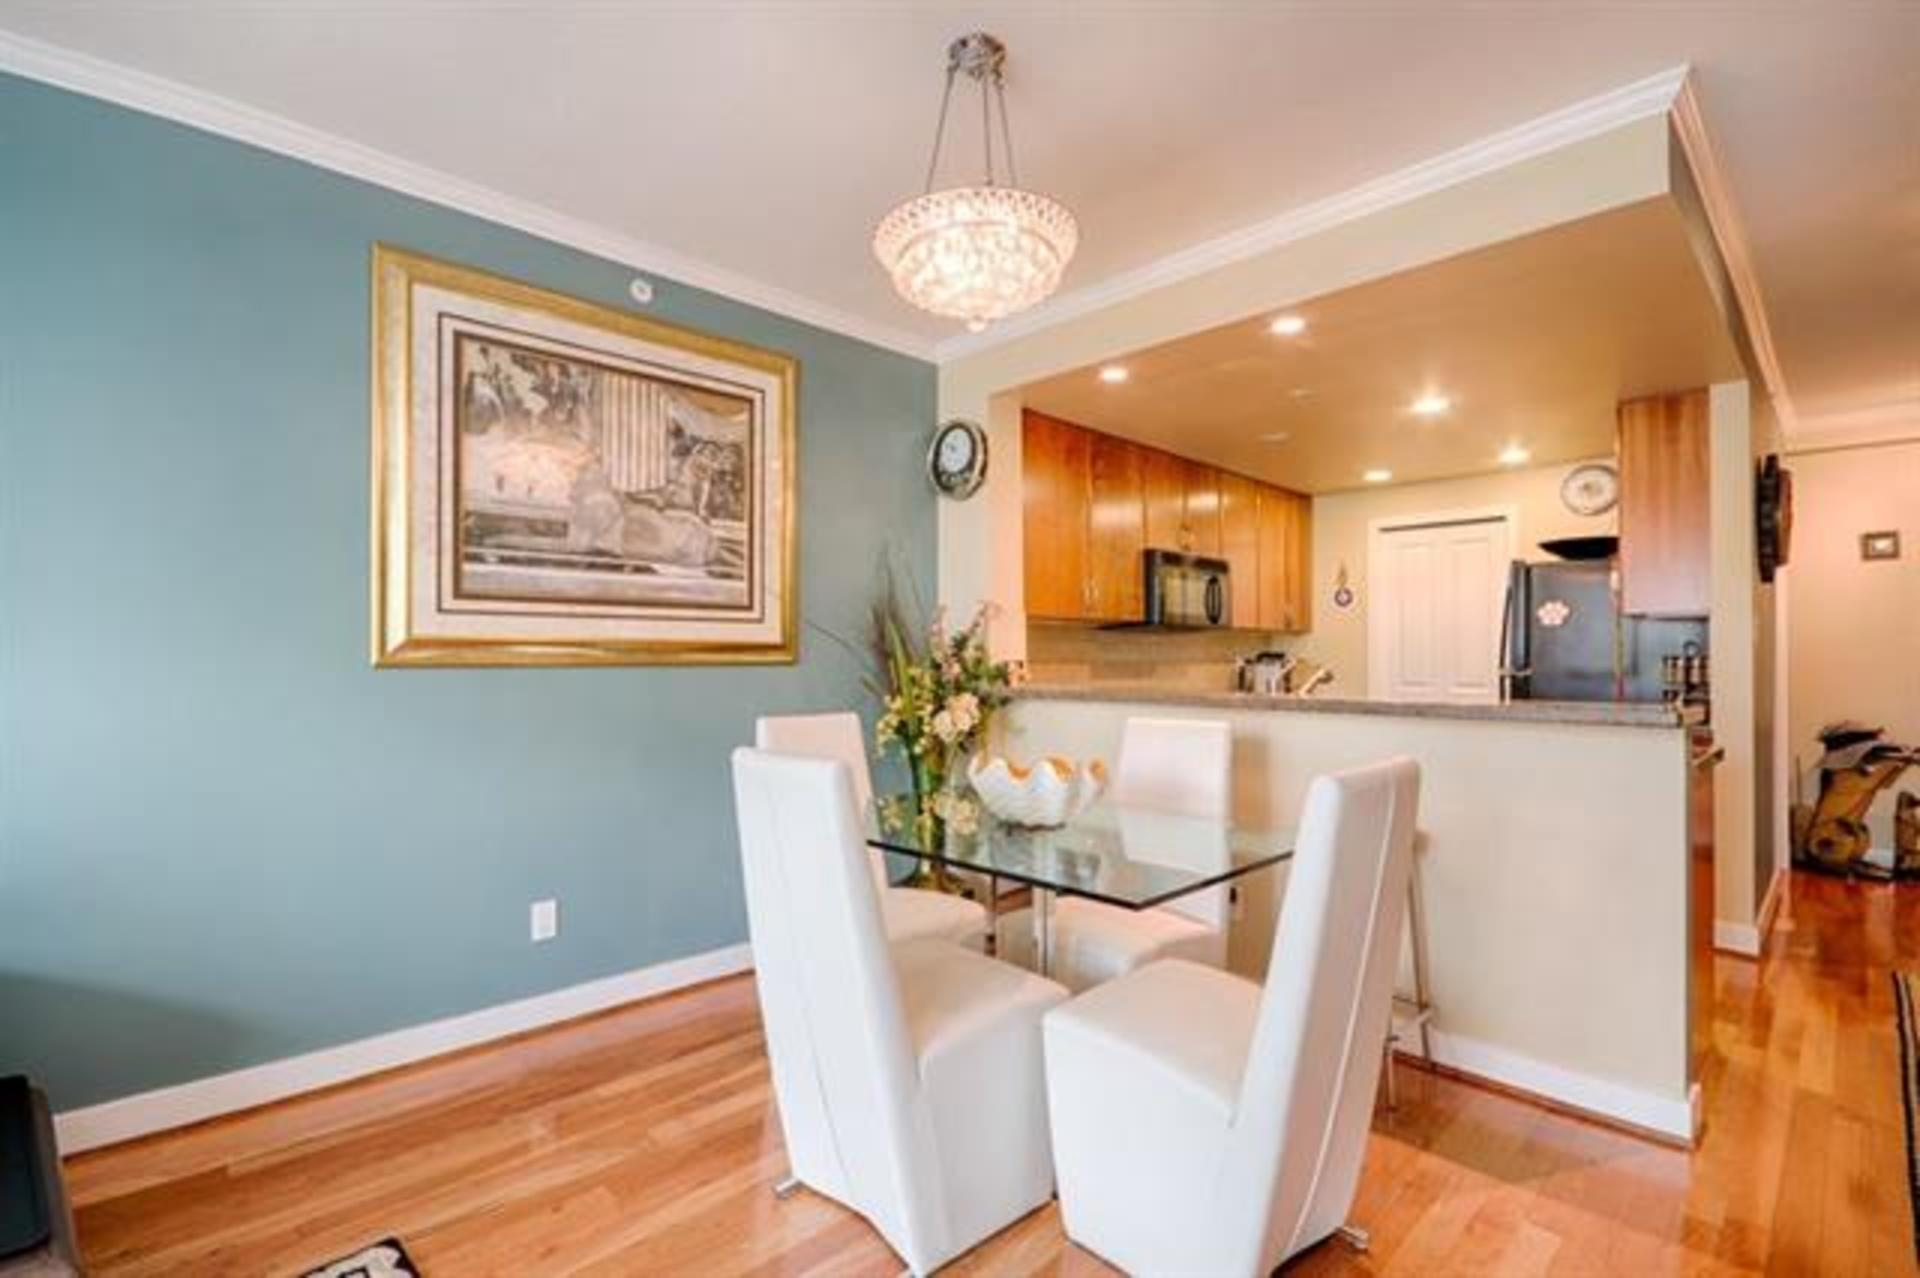 262049160-6 at 304 - 1428 W 6th Avenue, Fairview VW, Vancouver West